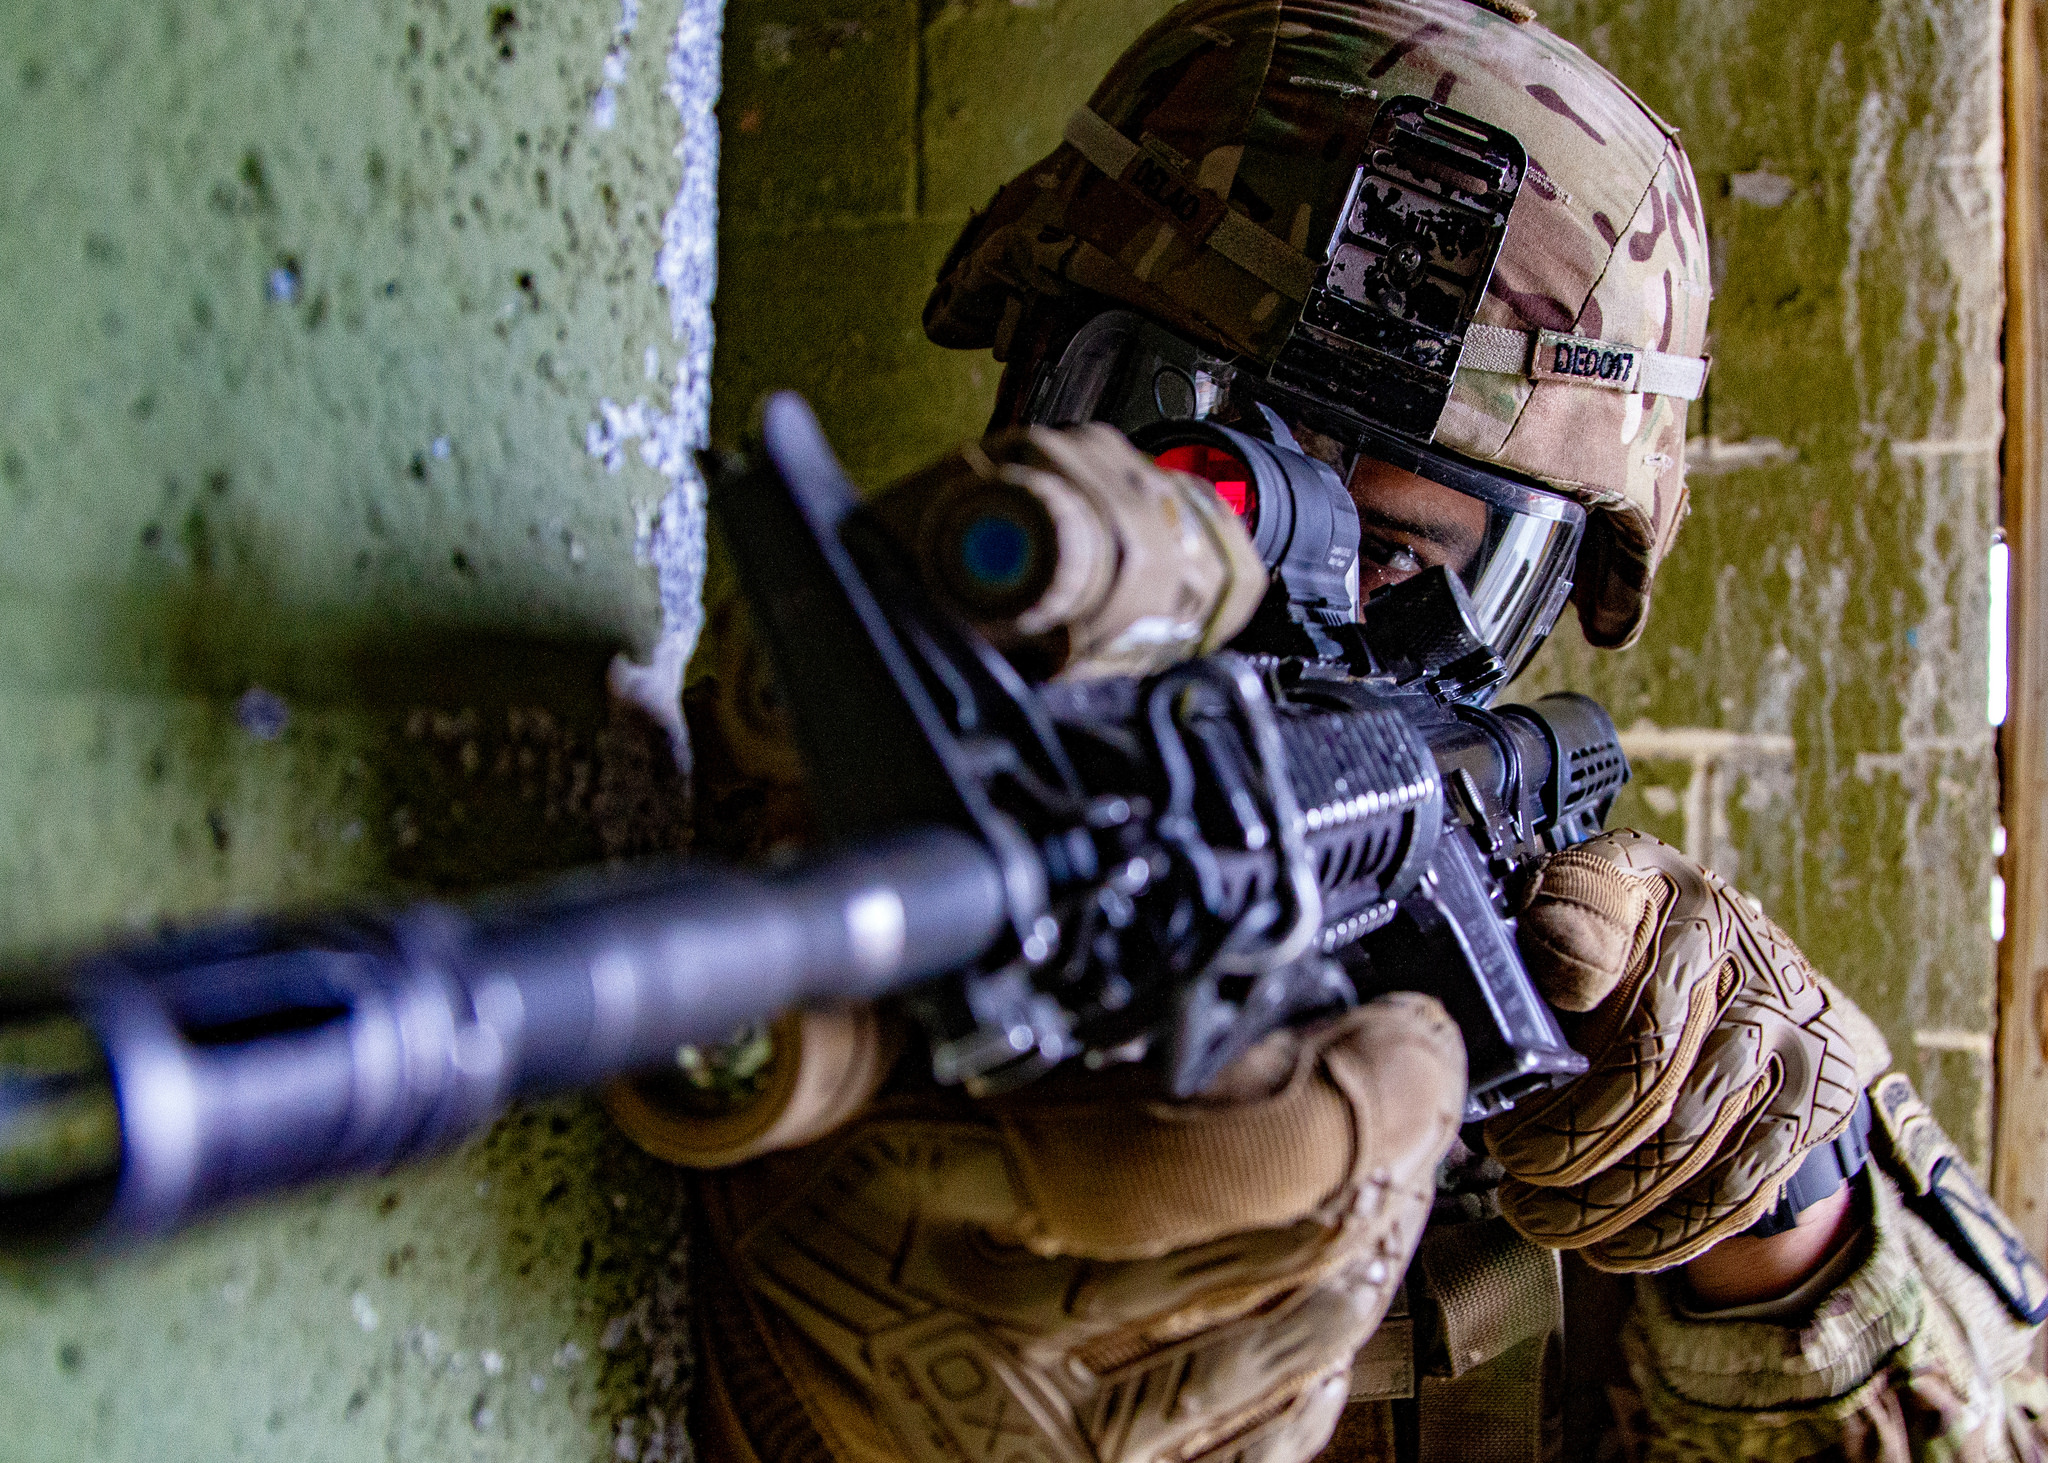 Capt. De Lao guards the corner of a hallway in a mock chemical environment during subterranean environment training at the platoon level at the Combined Arms Collective Training Facility at Fort Drum, N.Y., Nov 15, 2018. (Staff Sgt. James Avery/Army)